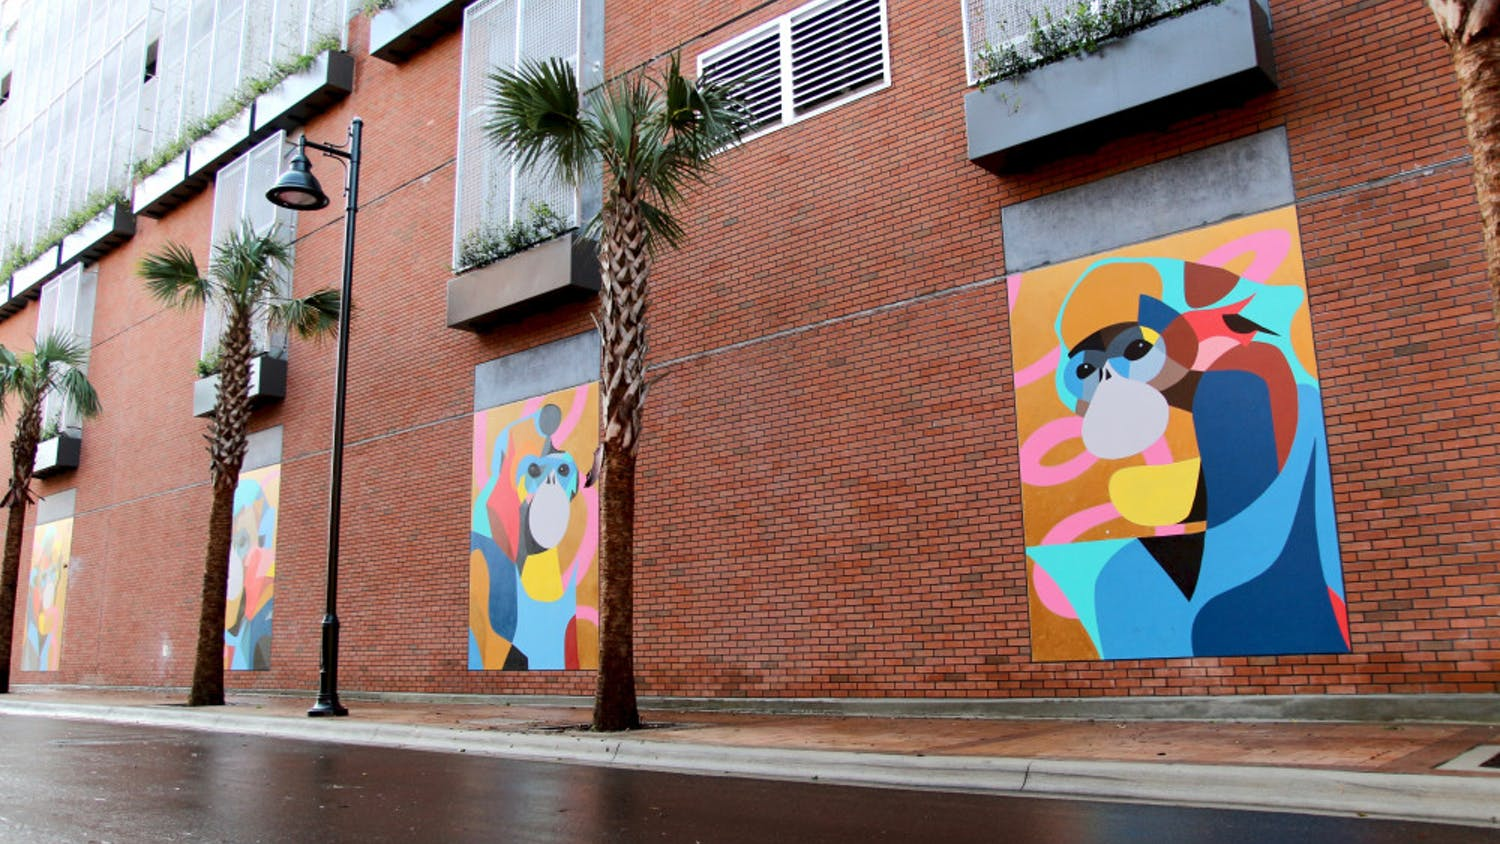 Four colorful murals of monkeys were added to a wall of The Standard Gainesville's parking garage on Northwest Third Avenue as part of a negotiation with the City of Gainesville. The building encroaches on the Florida Department of Transportation's property by less than ten feet.